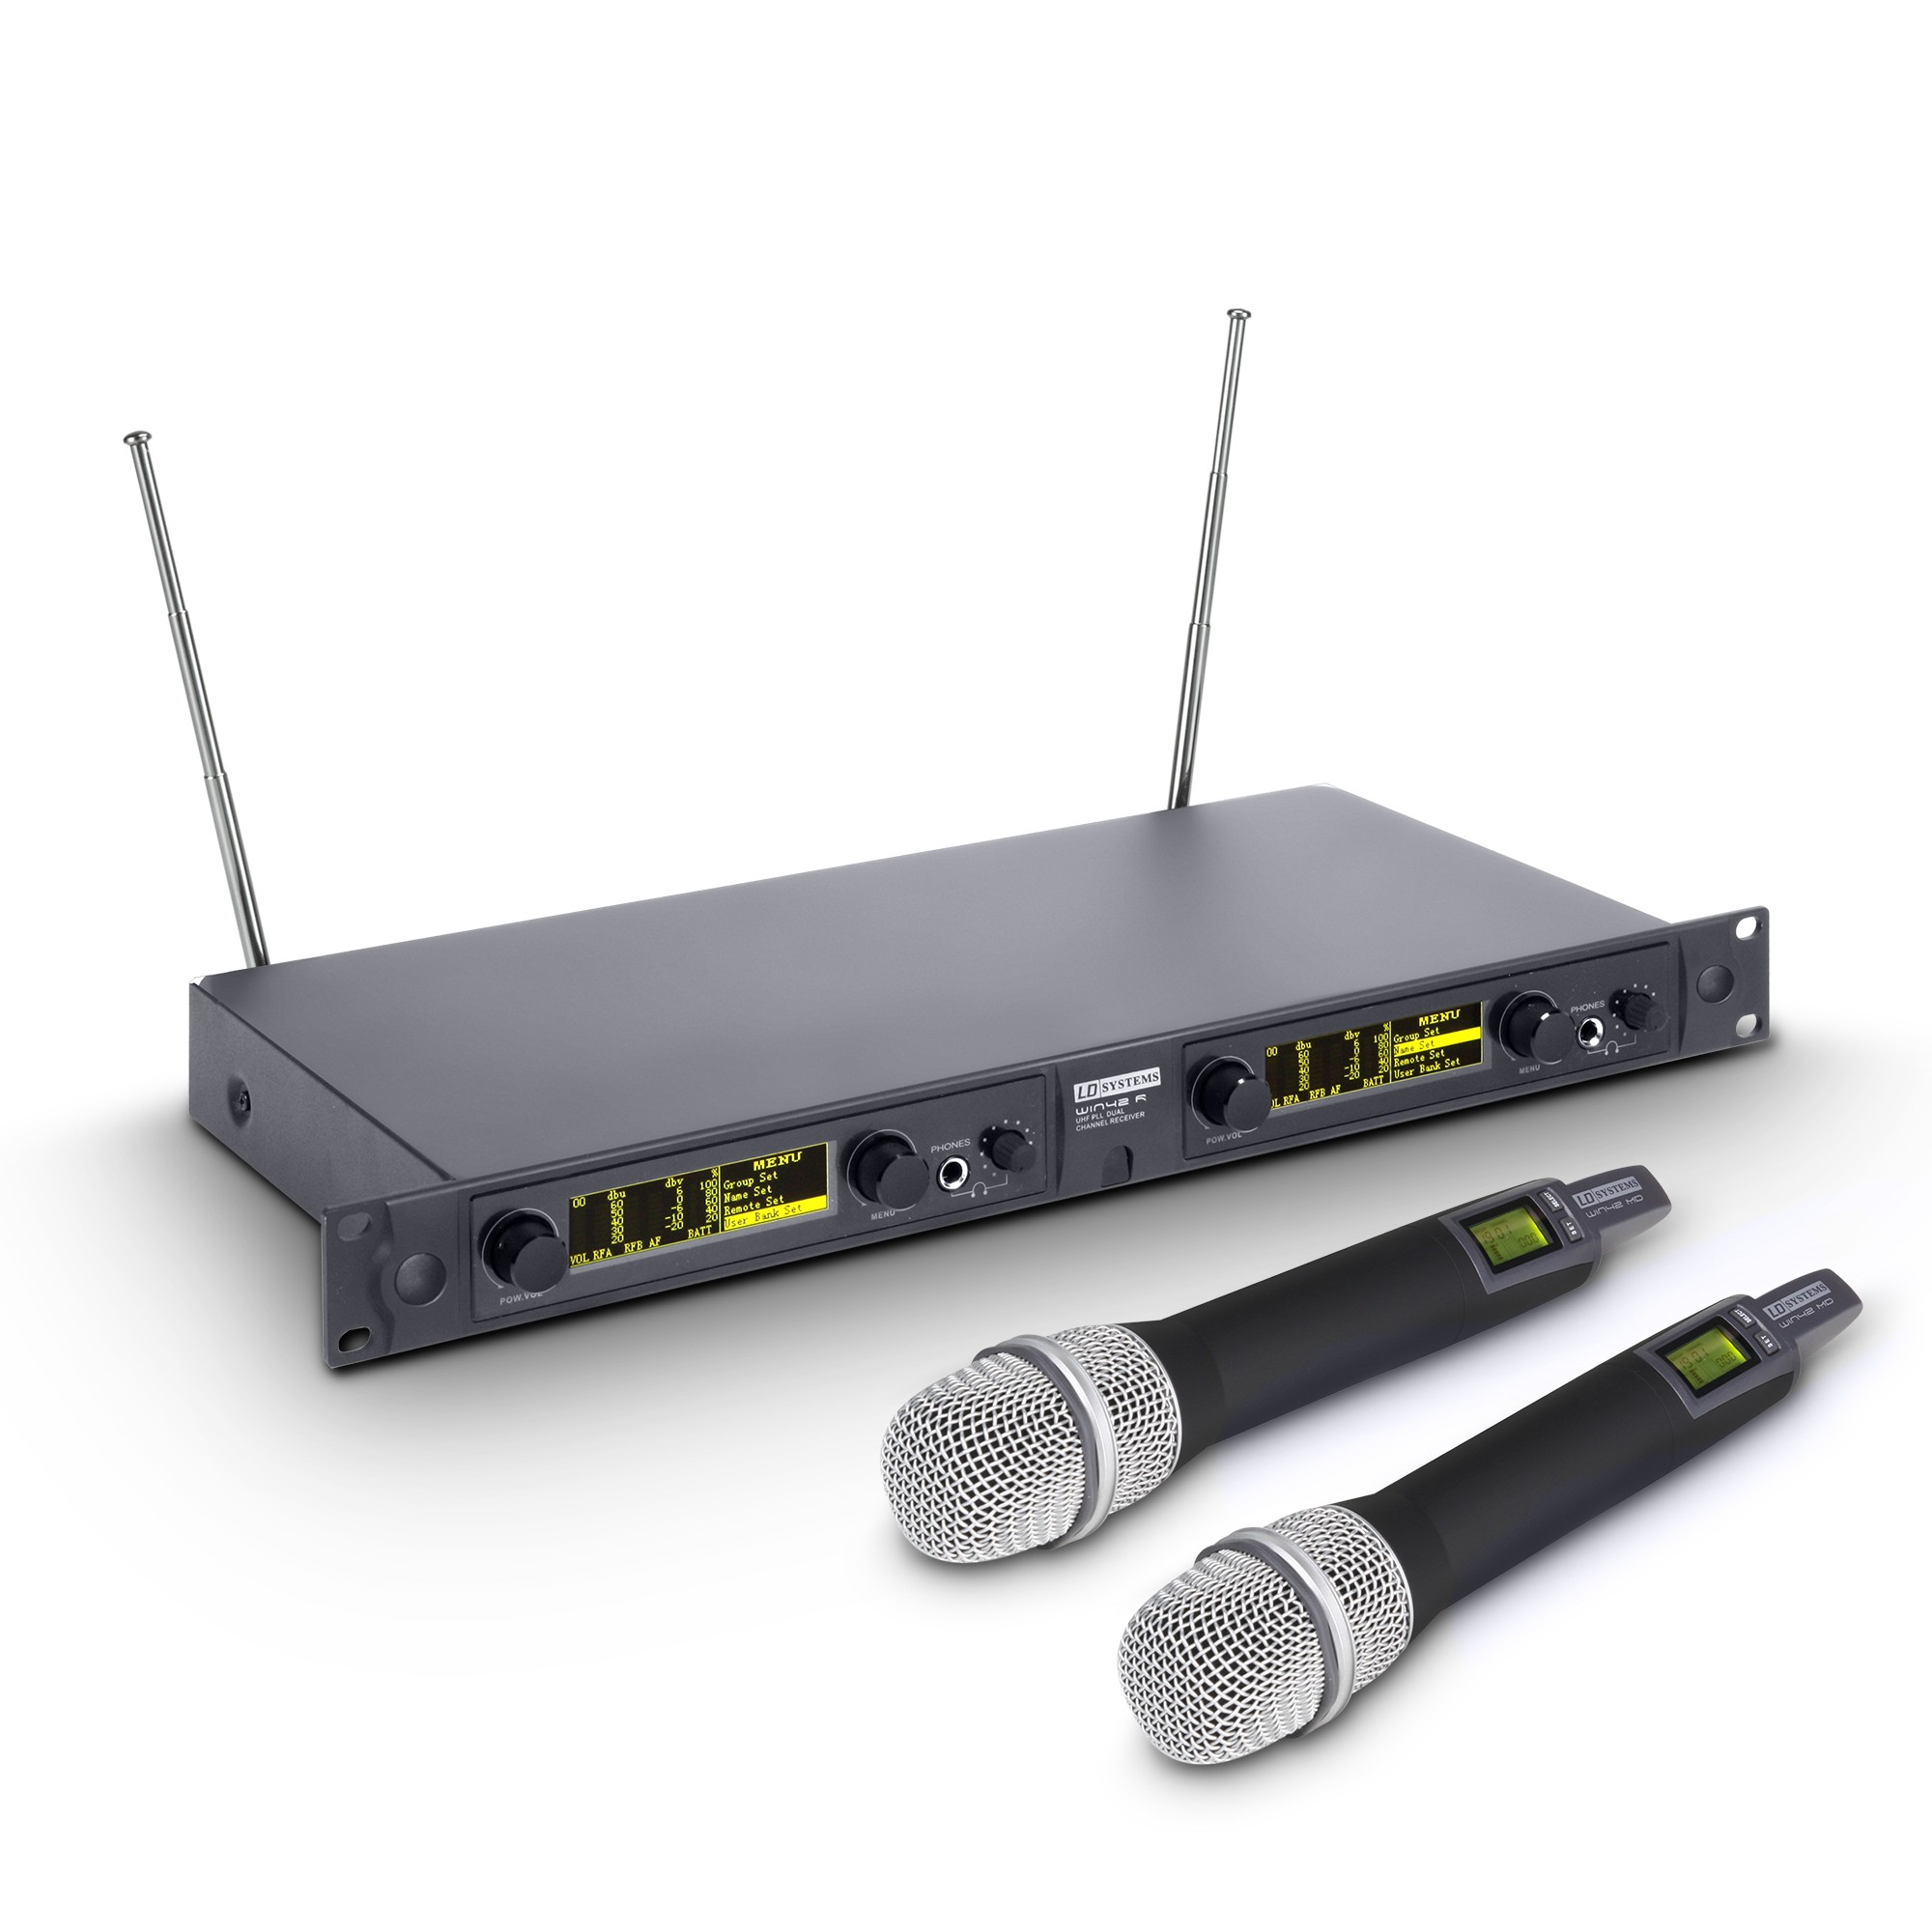 WIN 42 HHC 2 B 5 Wireless Microphone System with 2 x Condenser handheld microphone